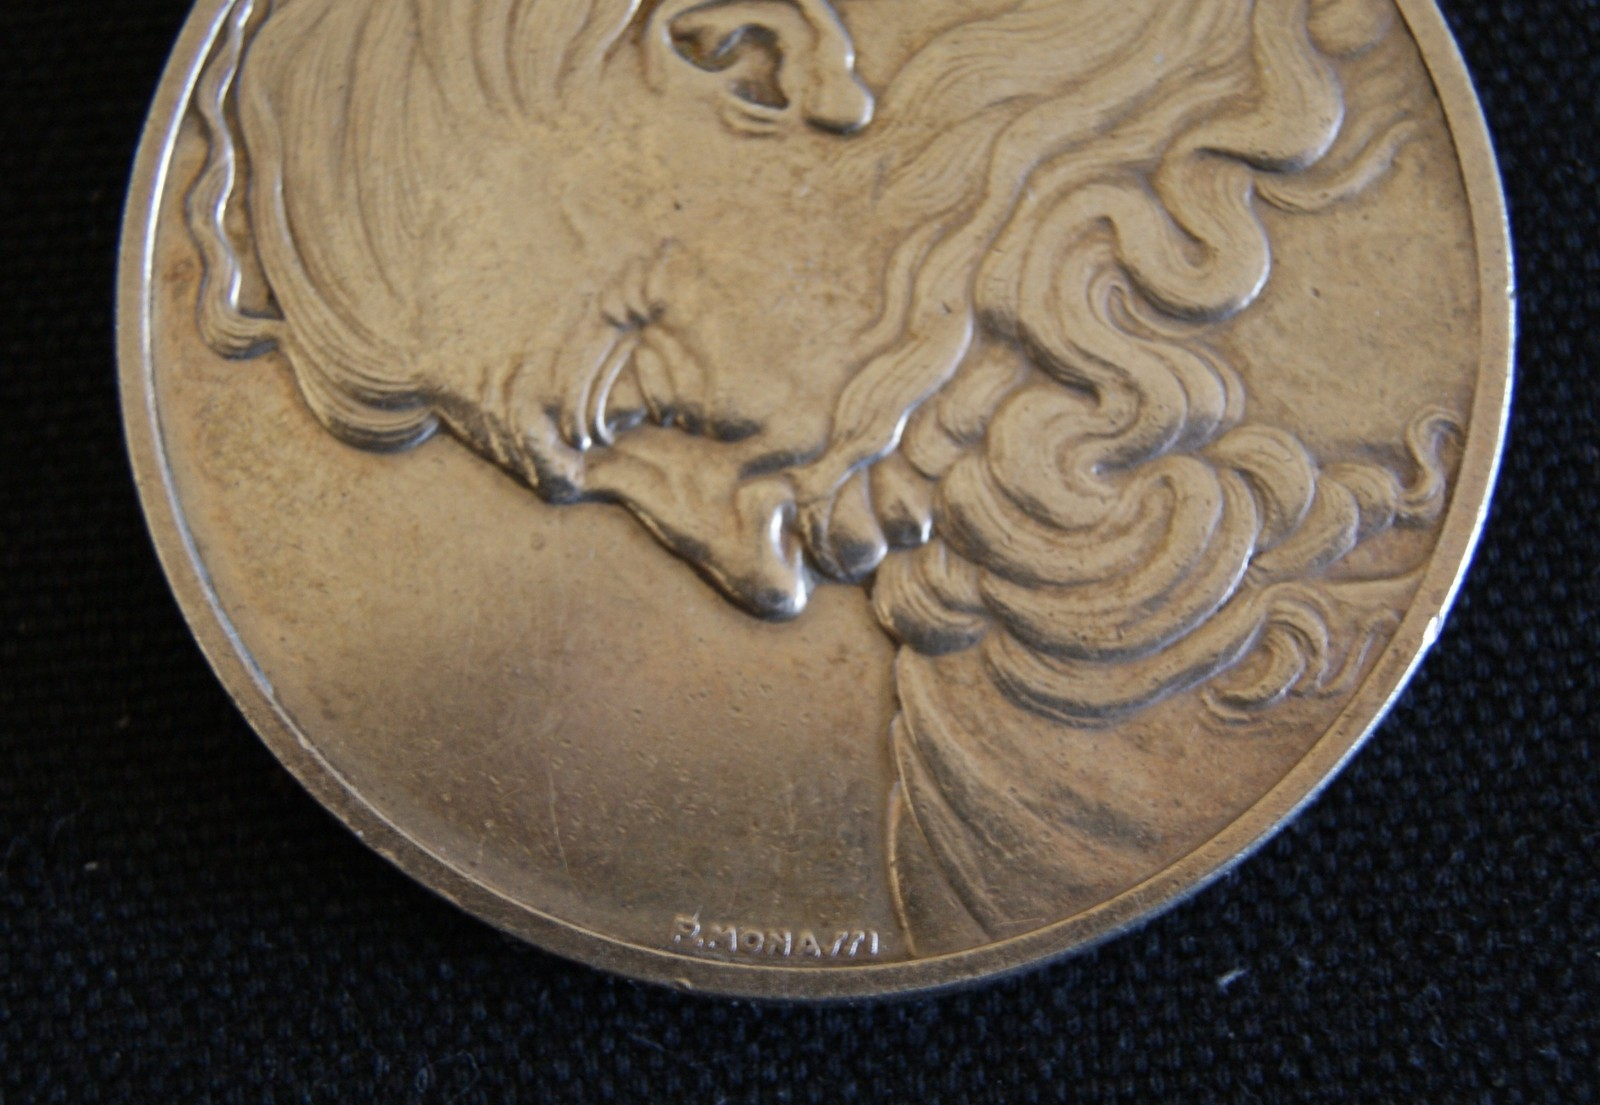 The Head Of God, The Genius of  Michelangelo 1.3 oz. 925 Silver coin medal.